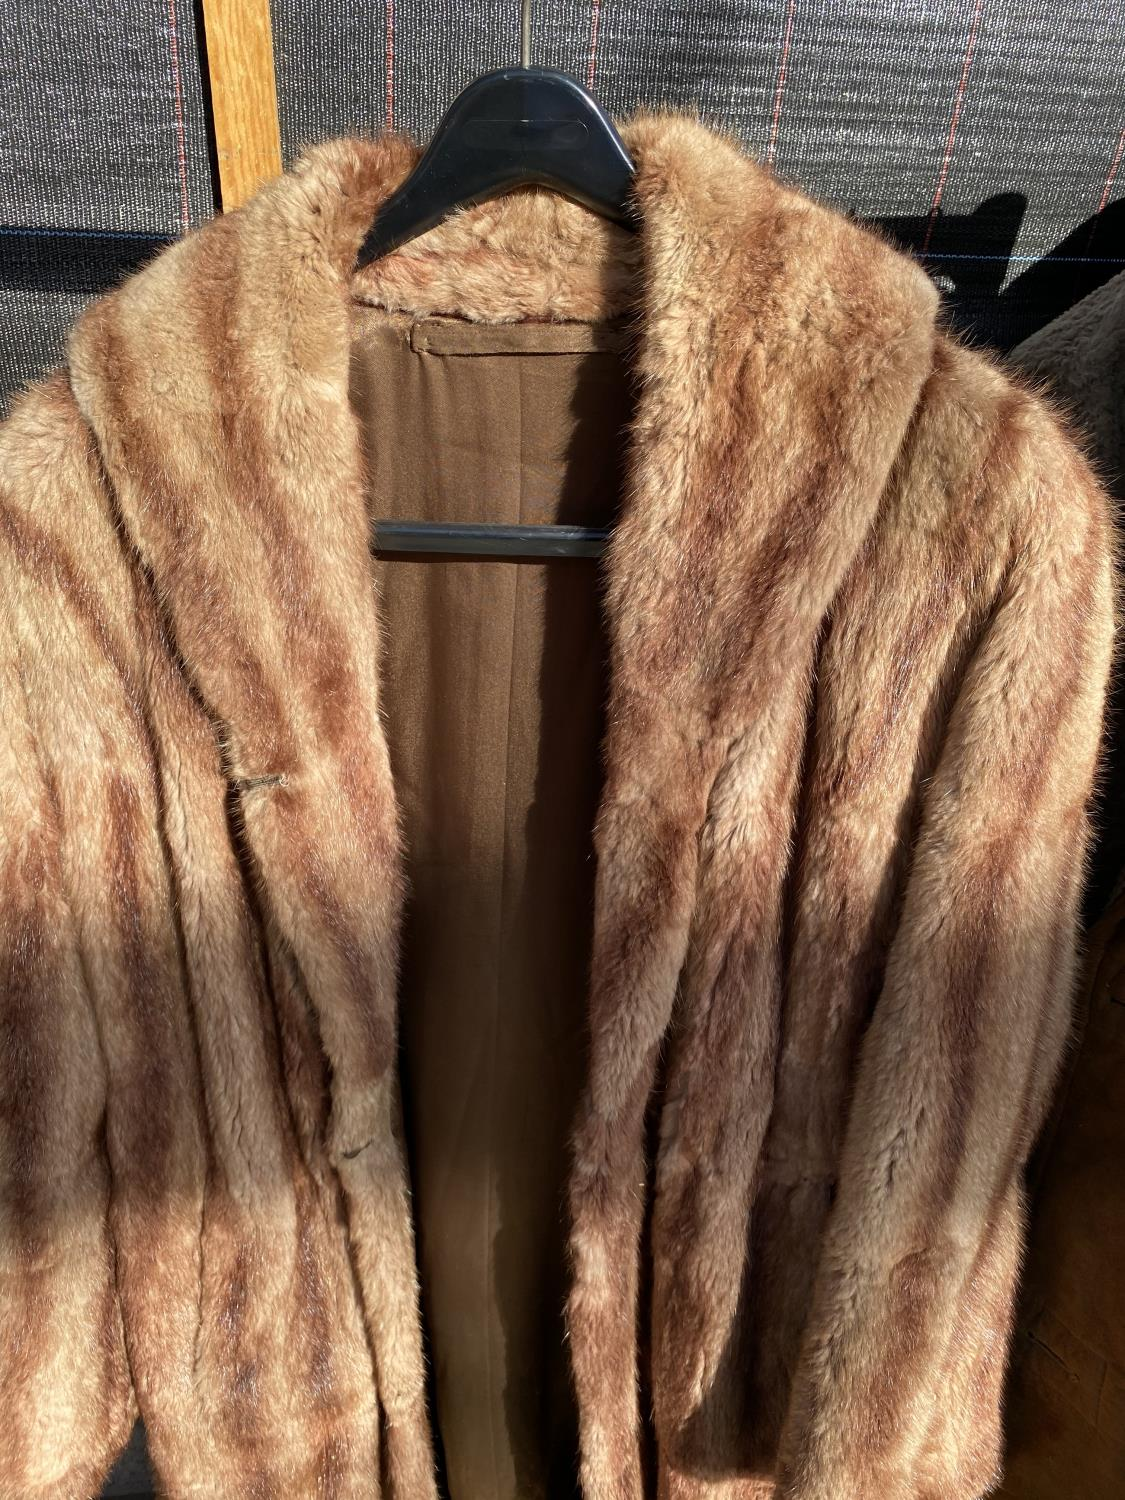 A GROUP OF FOUR COATS AND JACKETS TO INCLUDE A SHEEP SKIN COAT ETC - Image 5 of 7